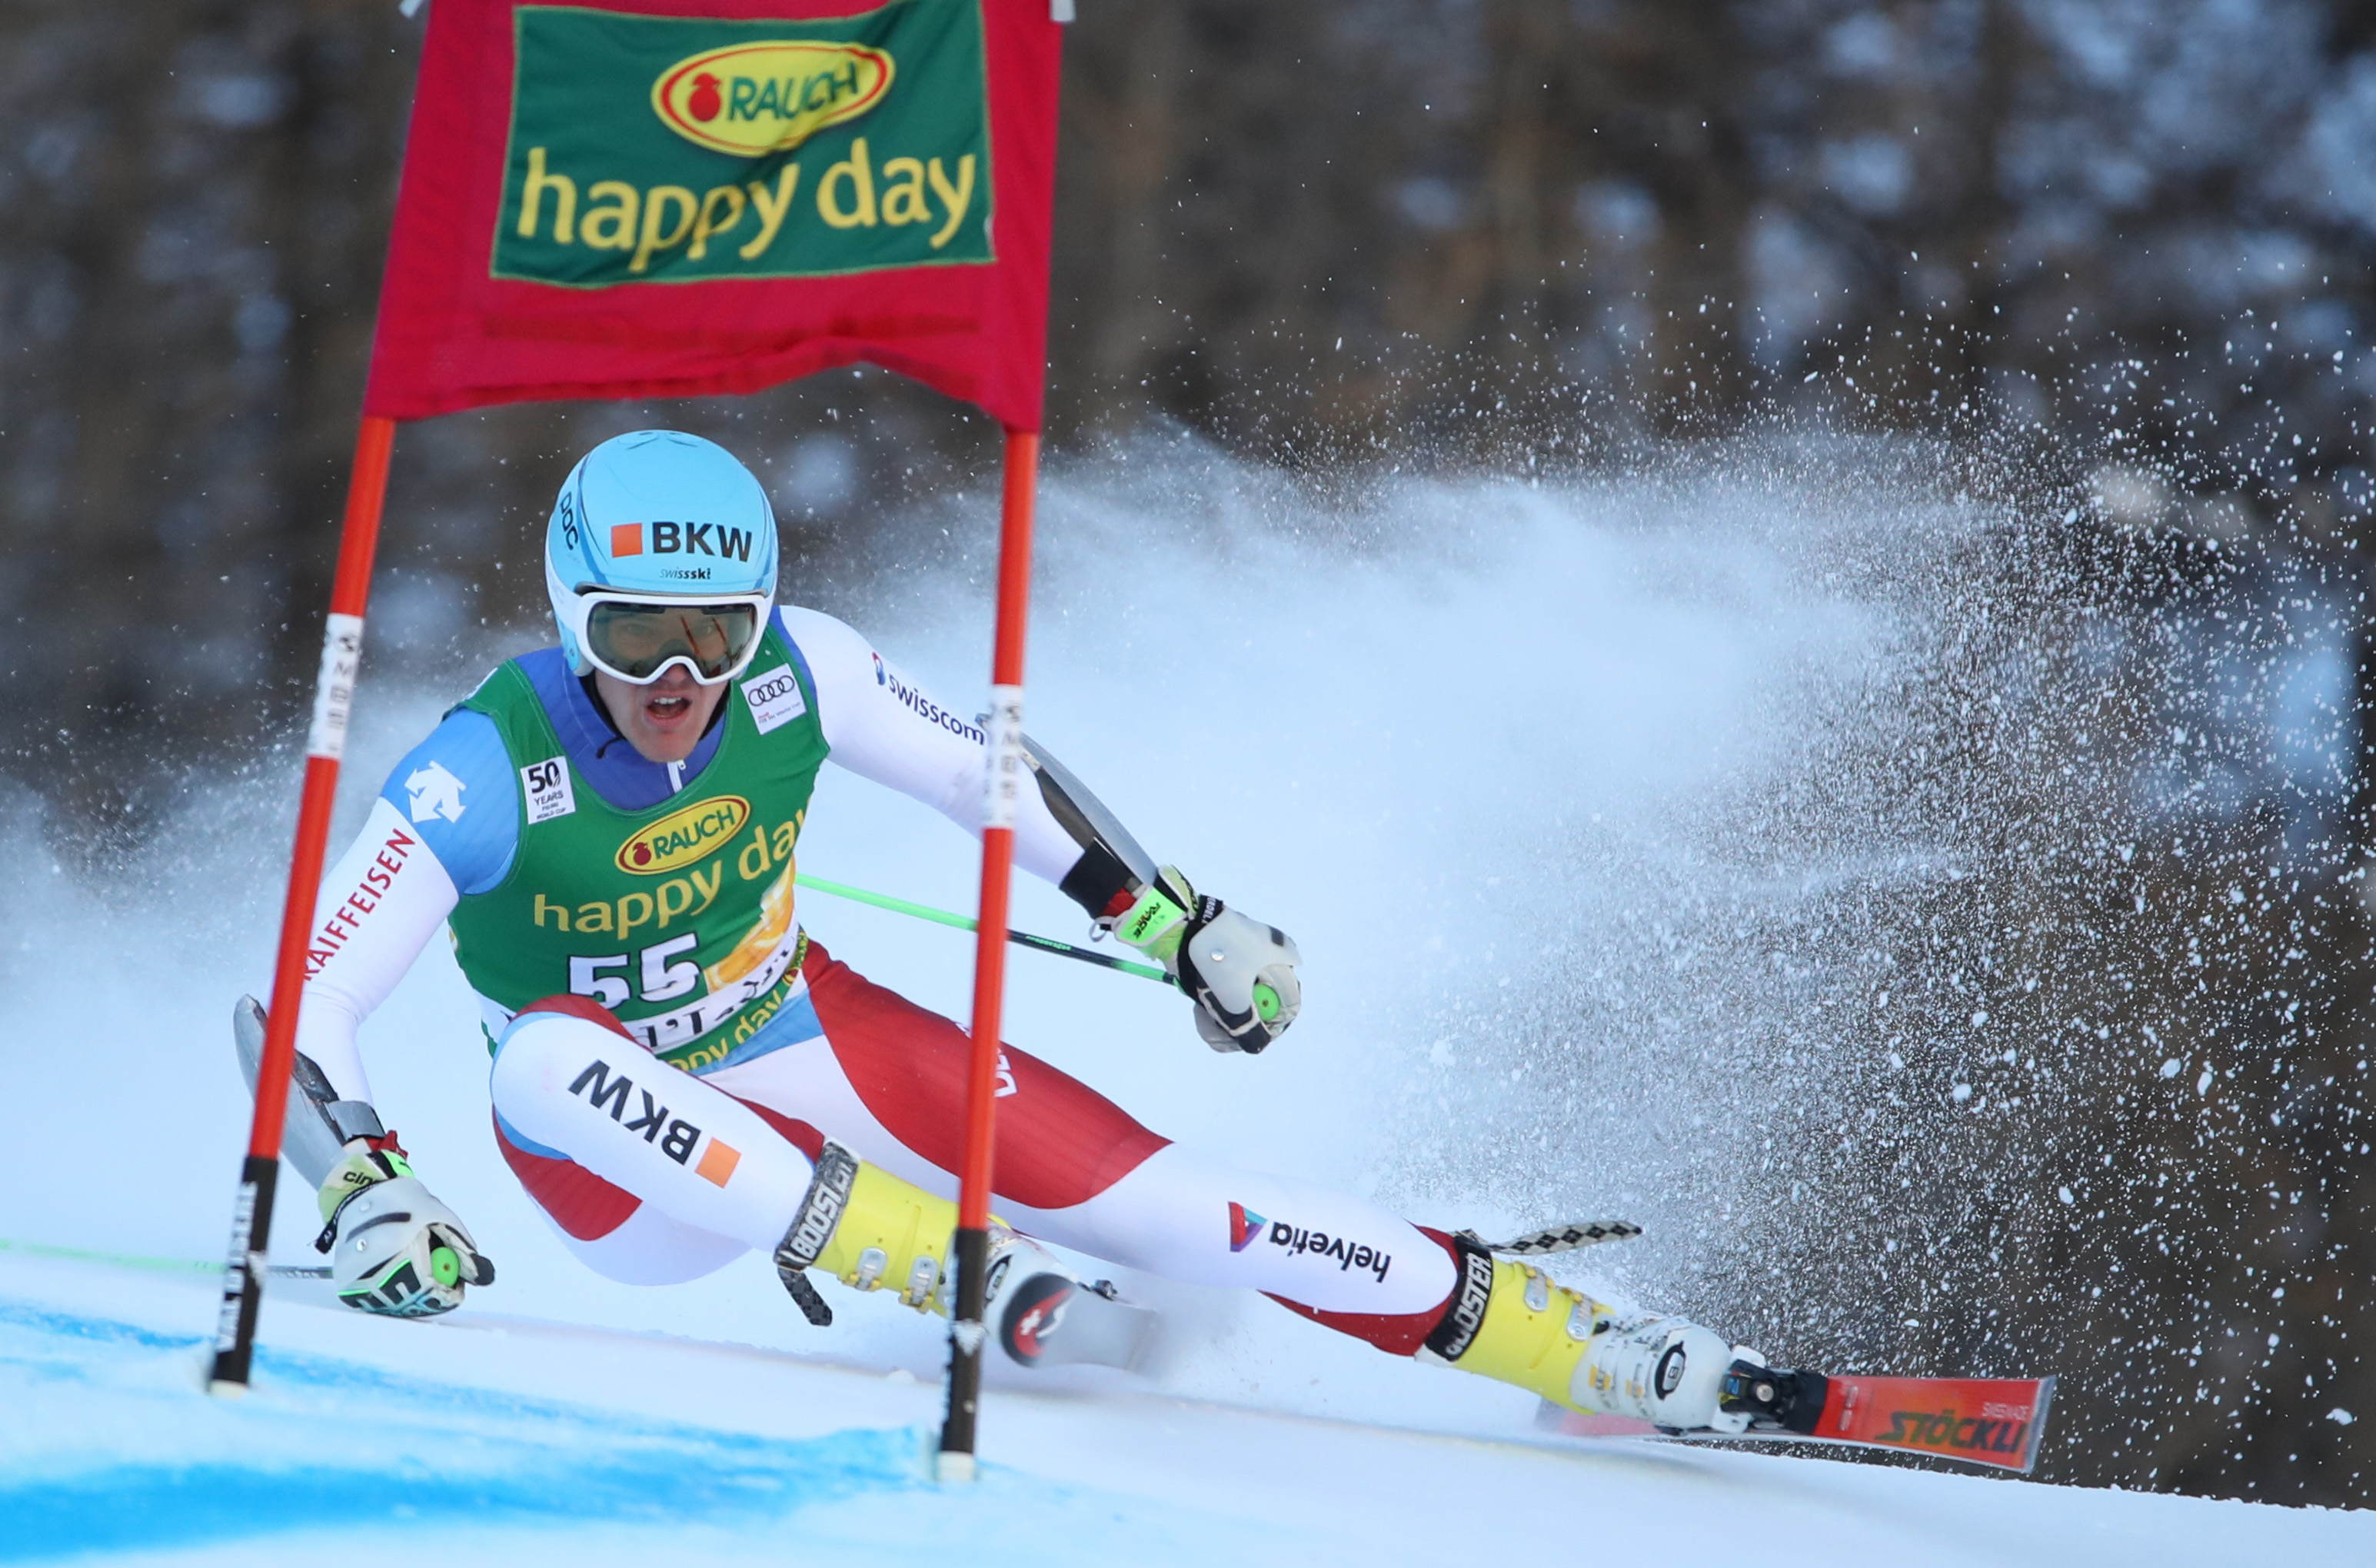 VAL D ISERE,FRANCE,04.DEC.16 - ALPINE SKIING - FIS World Cup Val D Isere, giant slalom, men. Image shows Stefan Rogentin (SUI). Keywords: Stoeckli. Photo: GEPA pictures/ Andreas Pranter